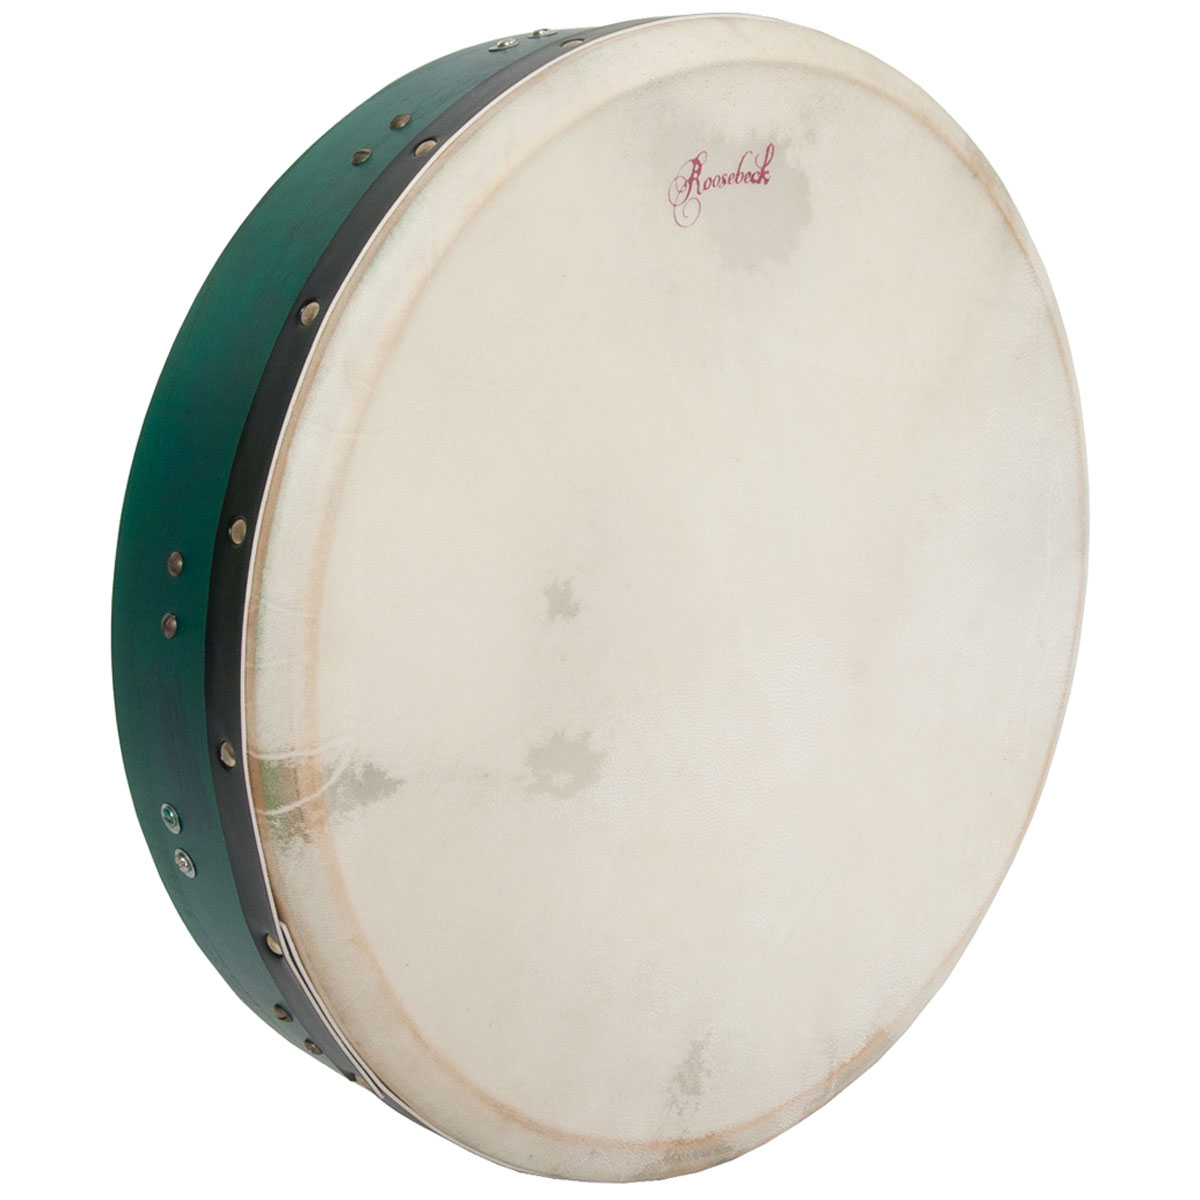 Roosebeck Tunable Mulberry Bodhran T-Bar 16'x3.5' - Green